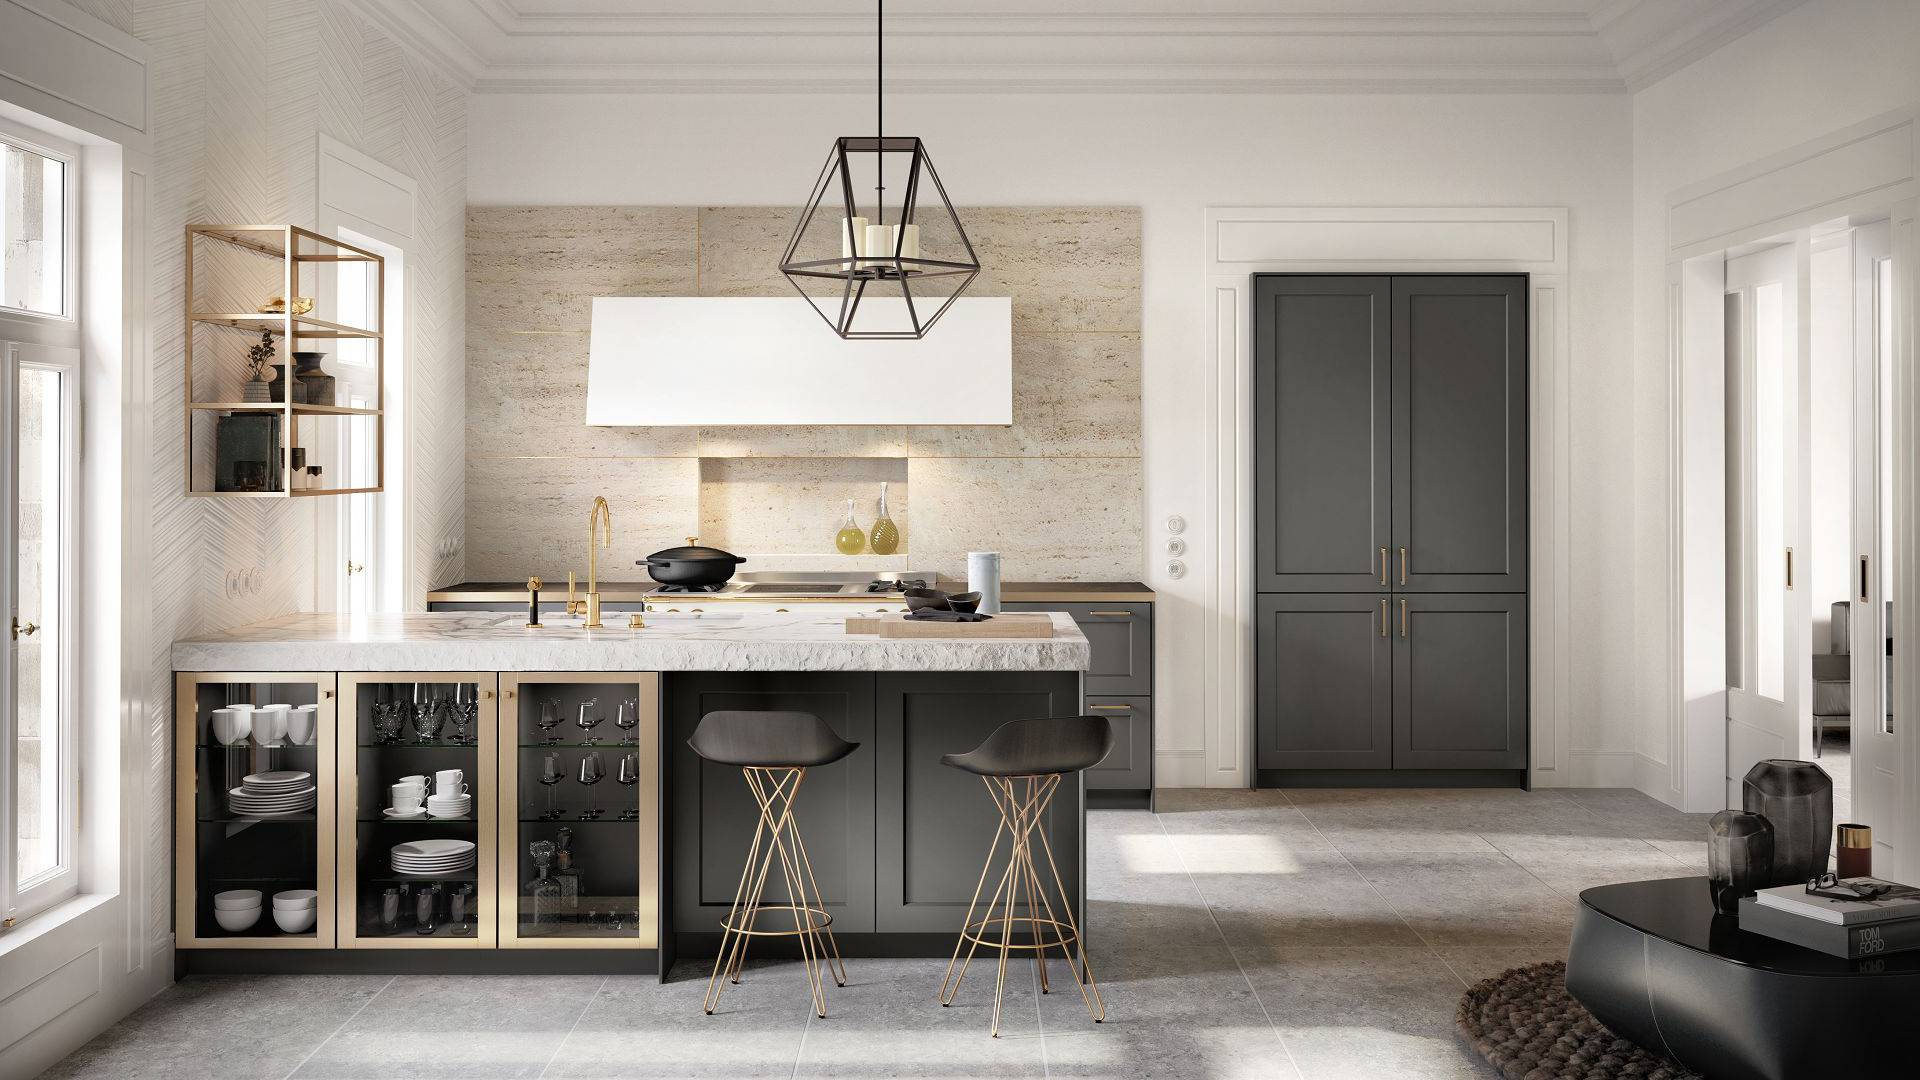 7 Recommended Kitchen Decorating Themes For Perfecting: SieMatic Kitchen Interior Design Of Timeless Elegance